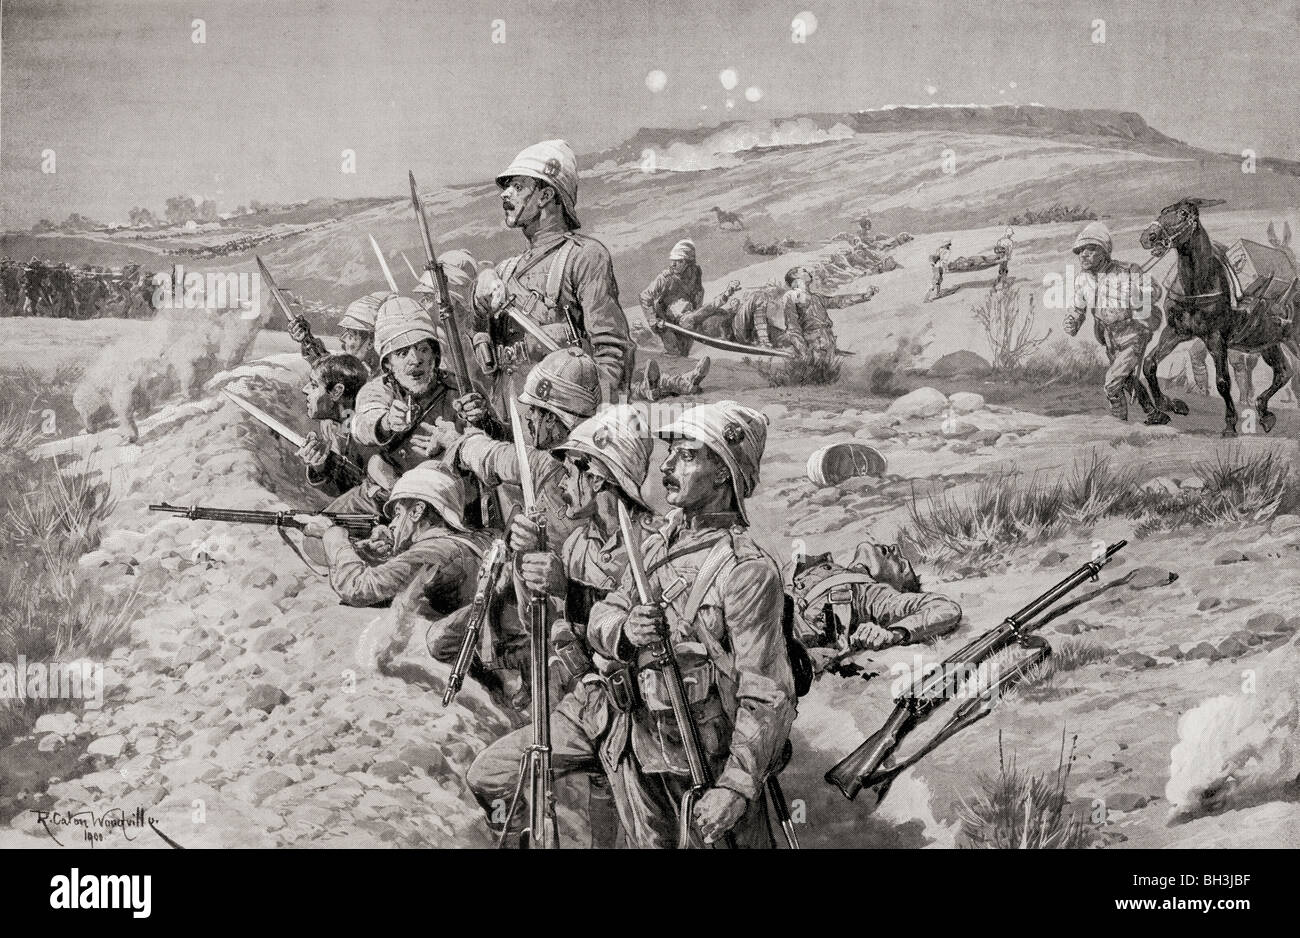 British troops with fixed bayonets ready to repel an attack against the trenches around Ladysmith, South Africa. - Stock Image